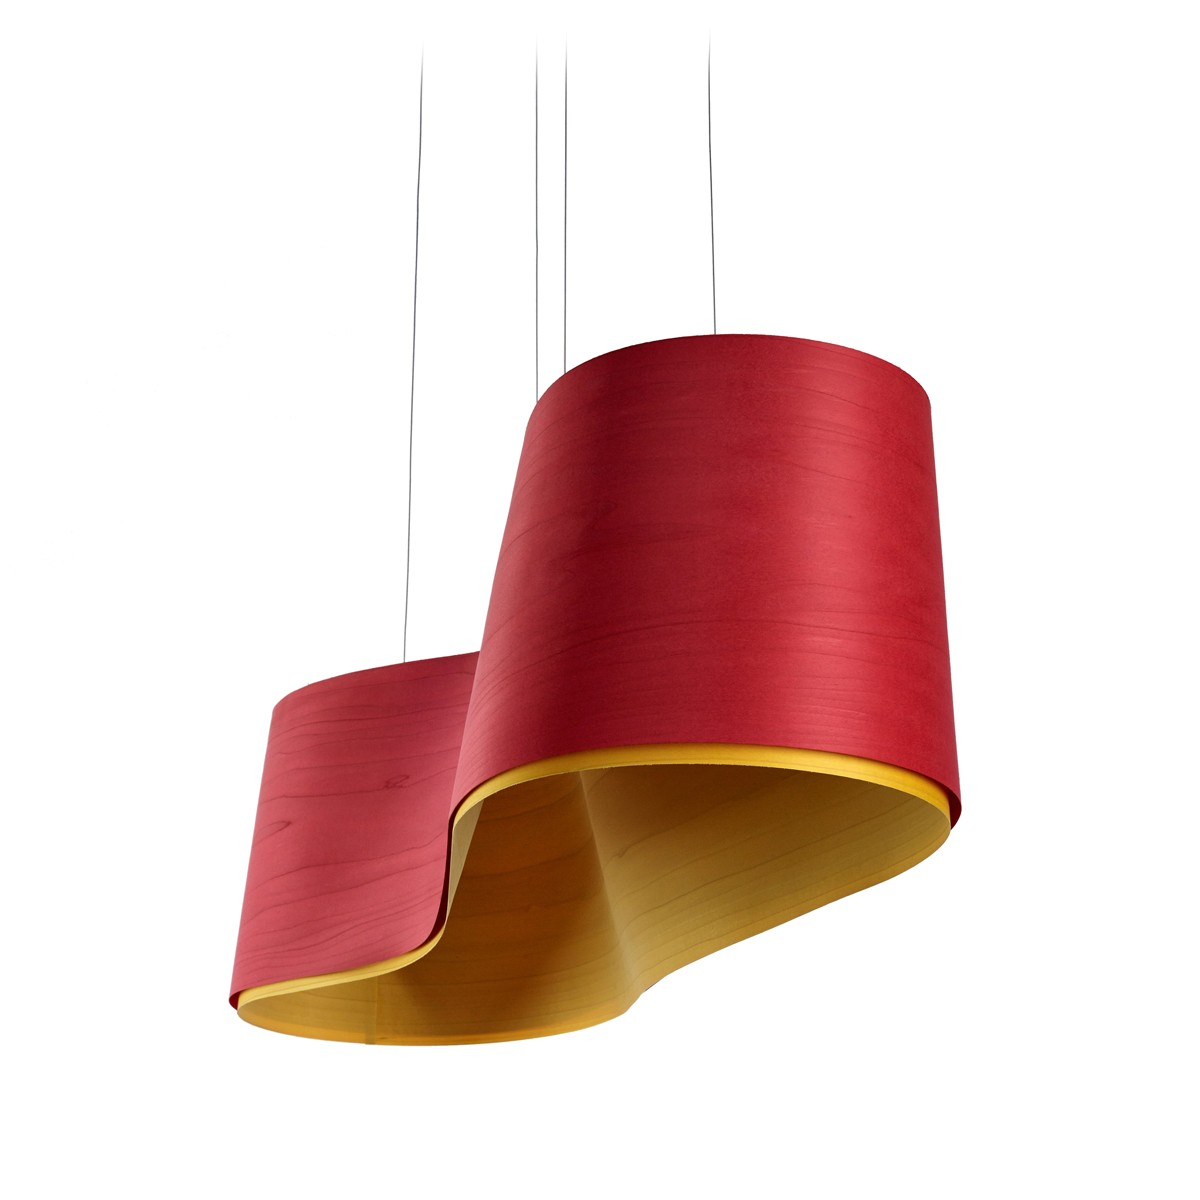 LZF Lamps New Wave Pendelleuchte, rot, innen: gelb